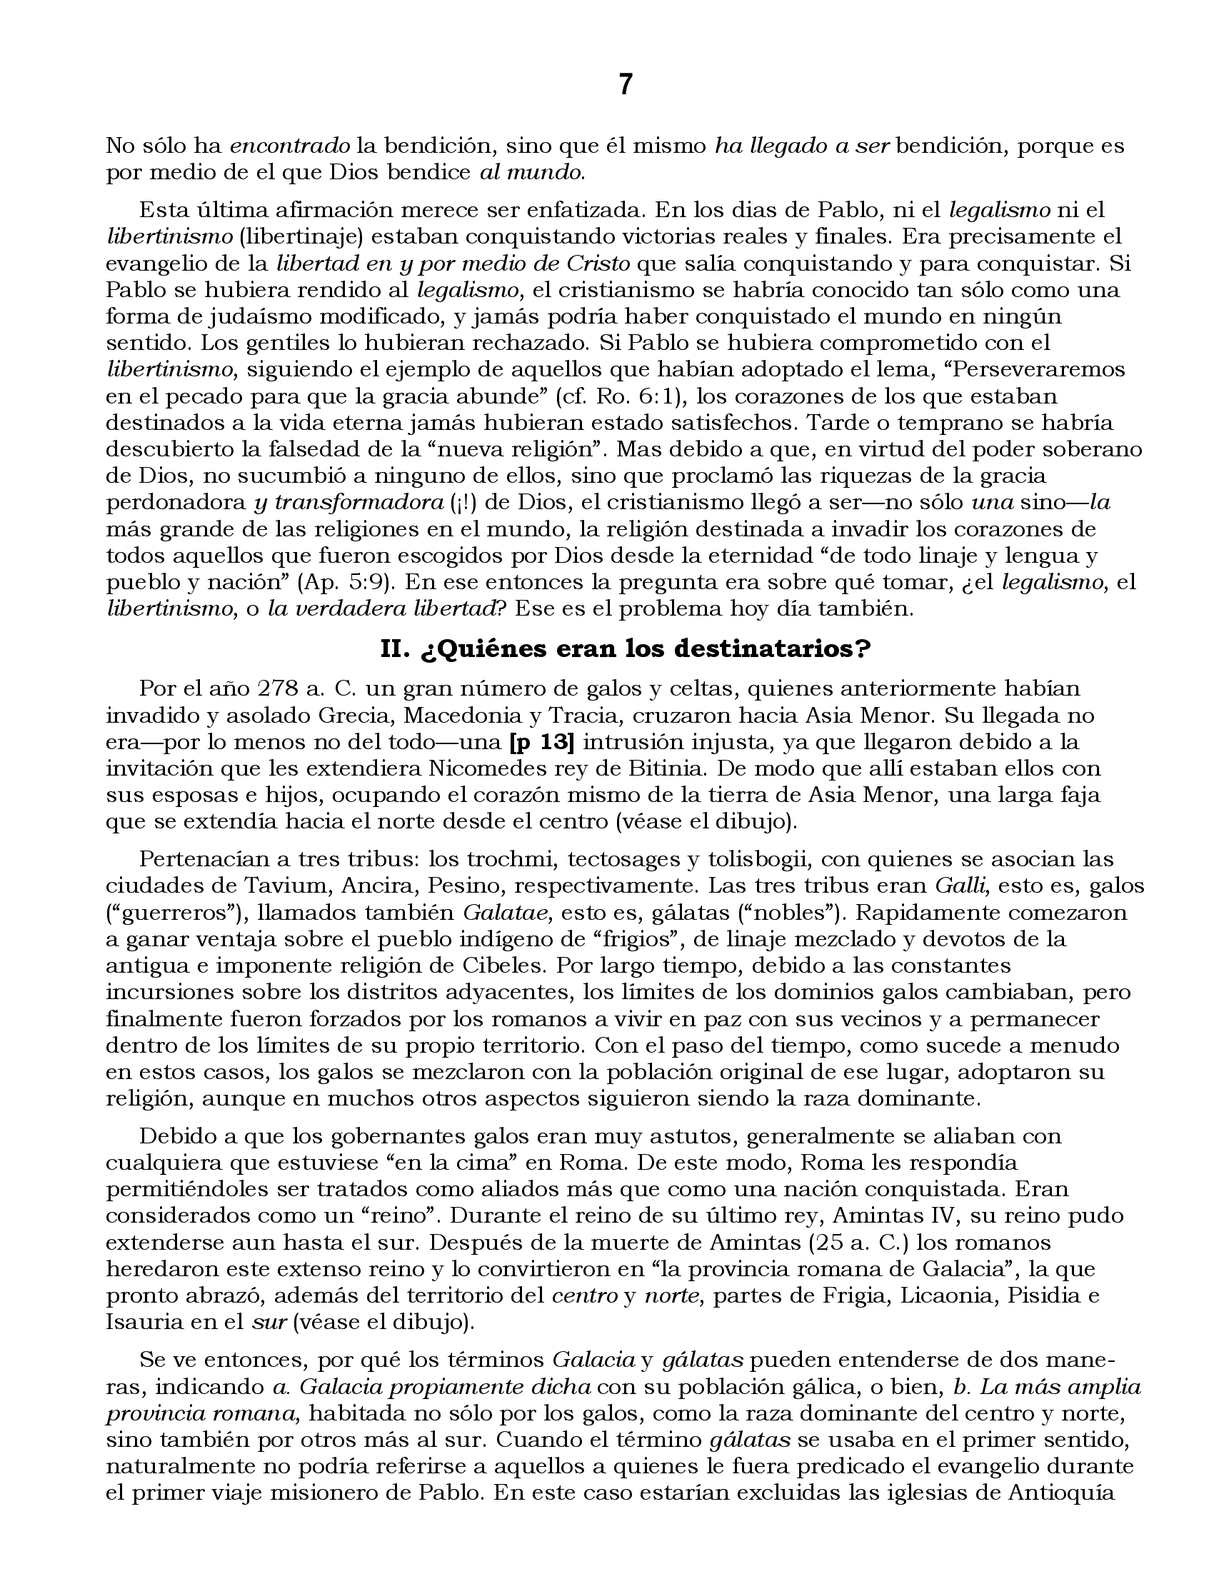 Page 7